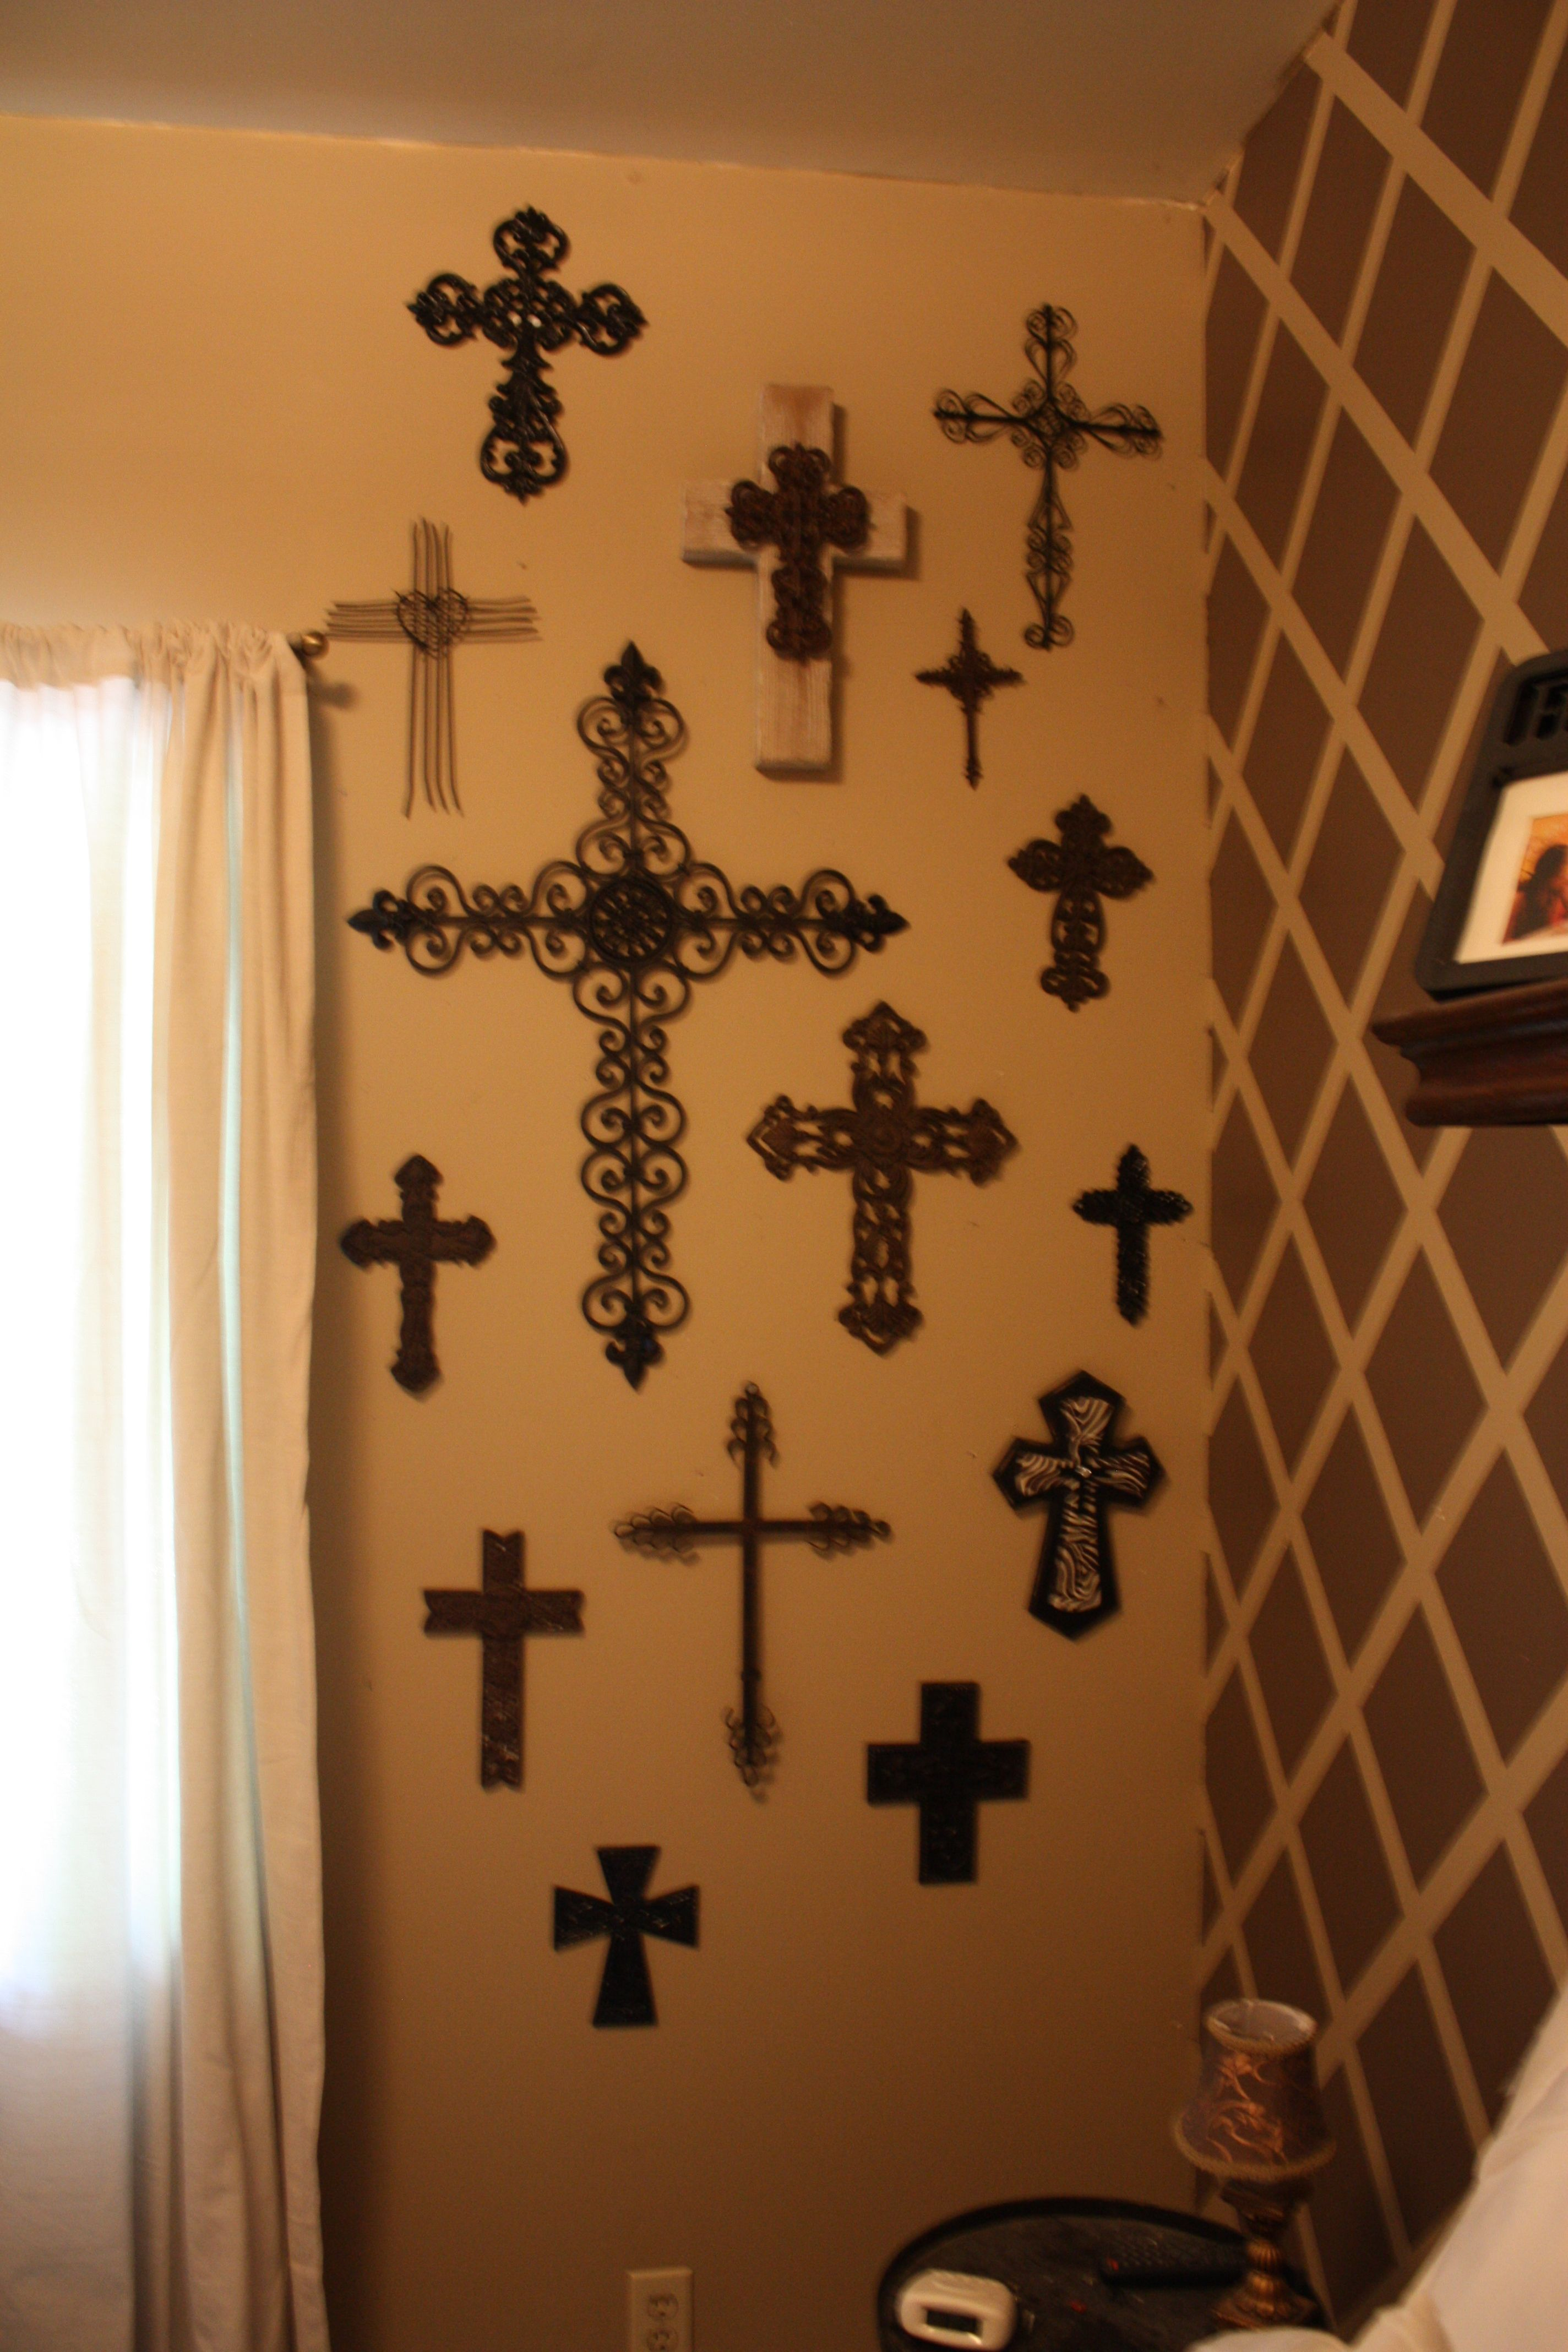 Pin By Paije O Connor On For The Home Cross Wall Collage Crosses Decor Wall Crosses